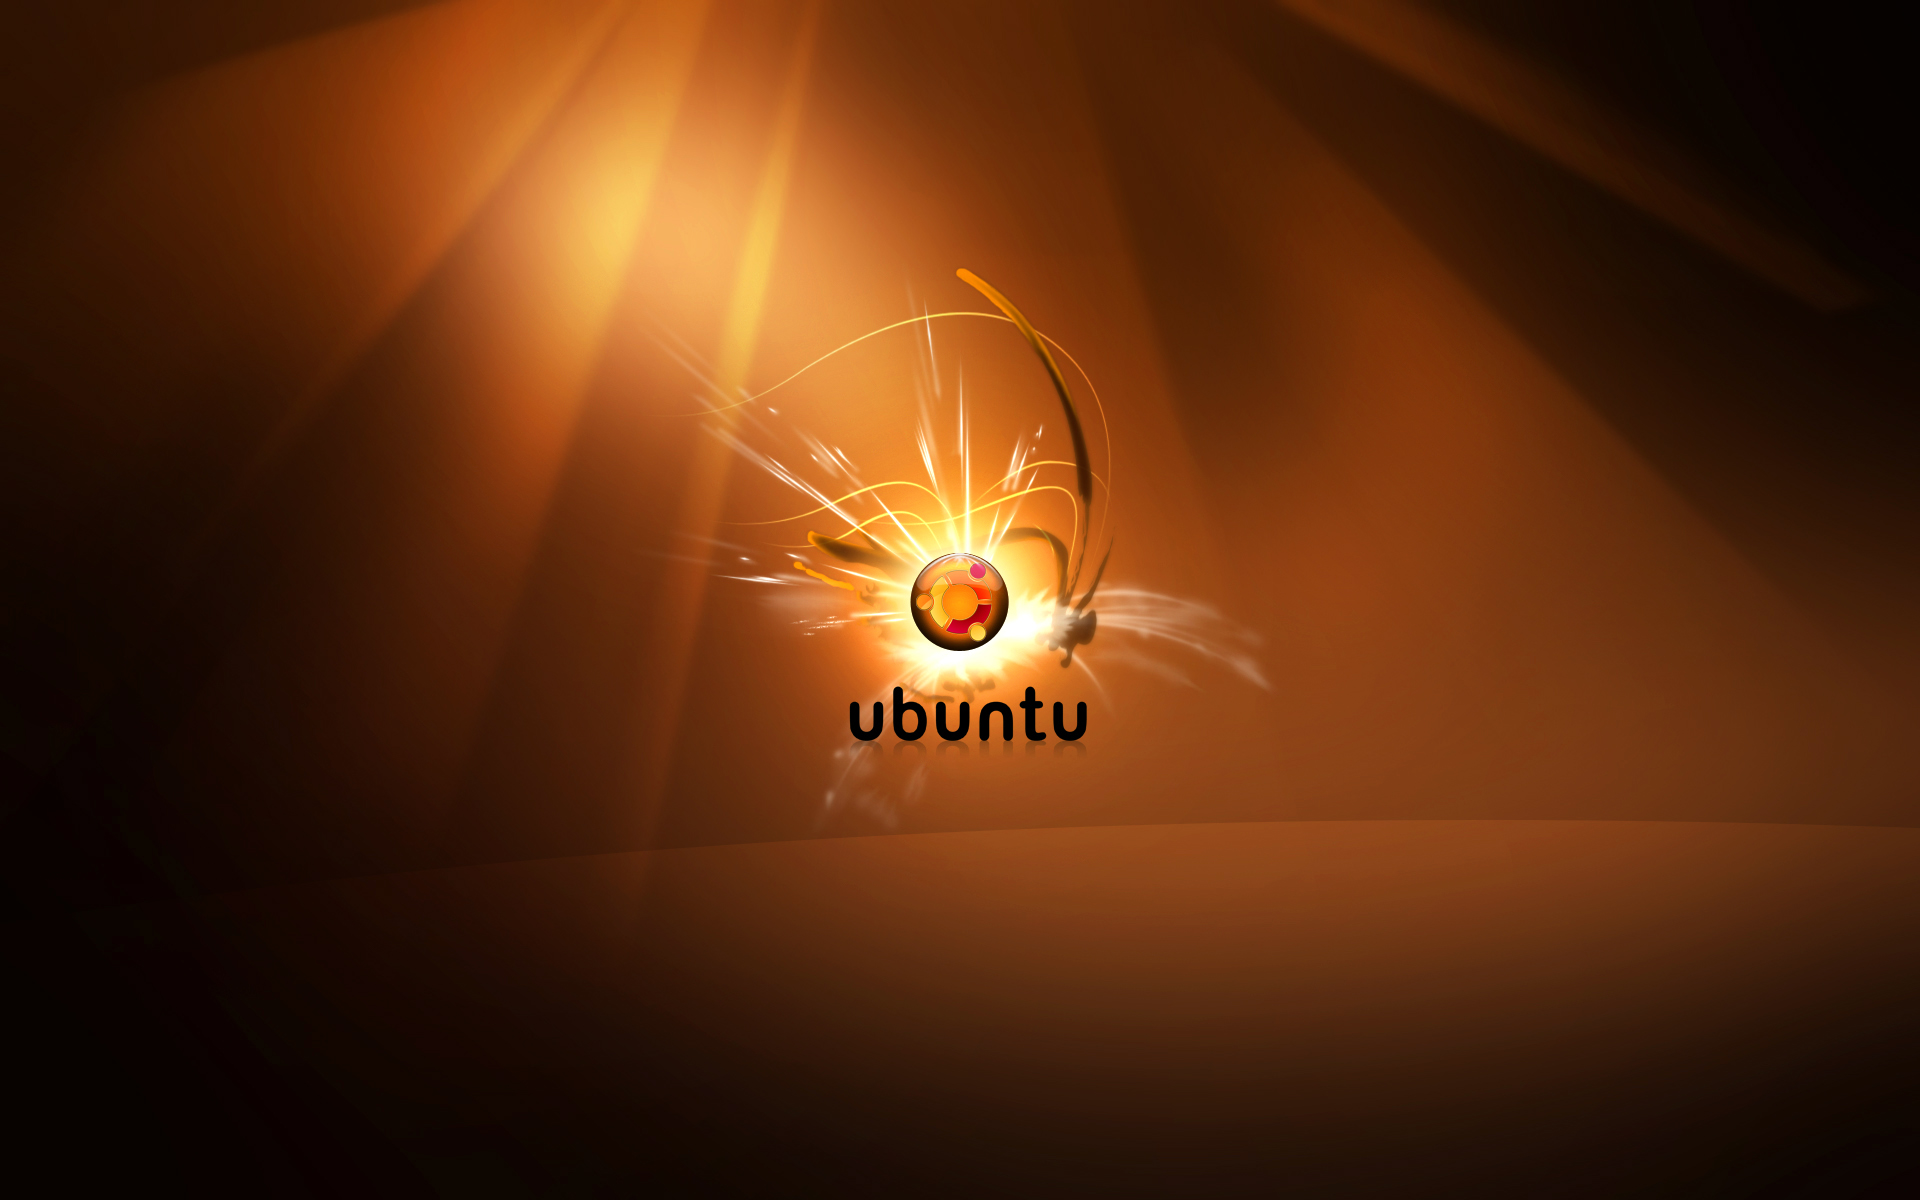 Ubuntu Glow by BigAction